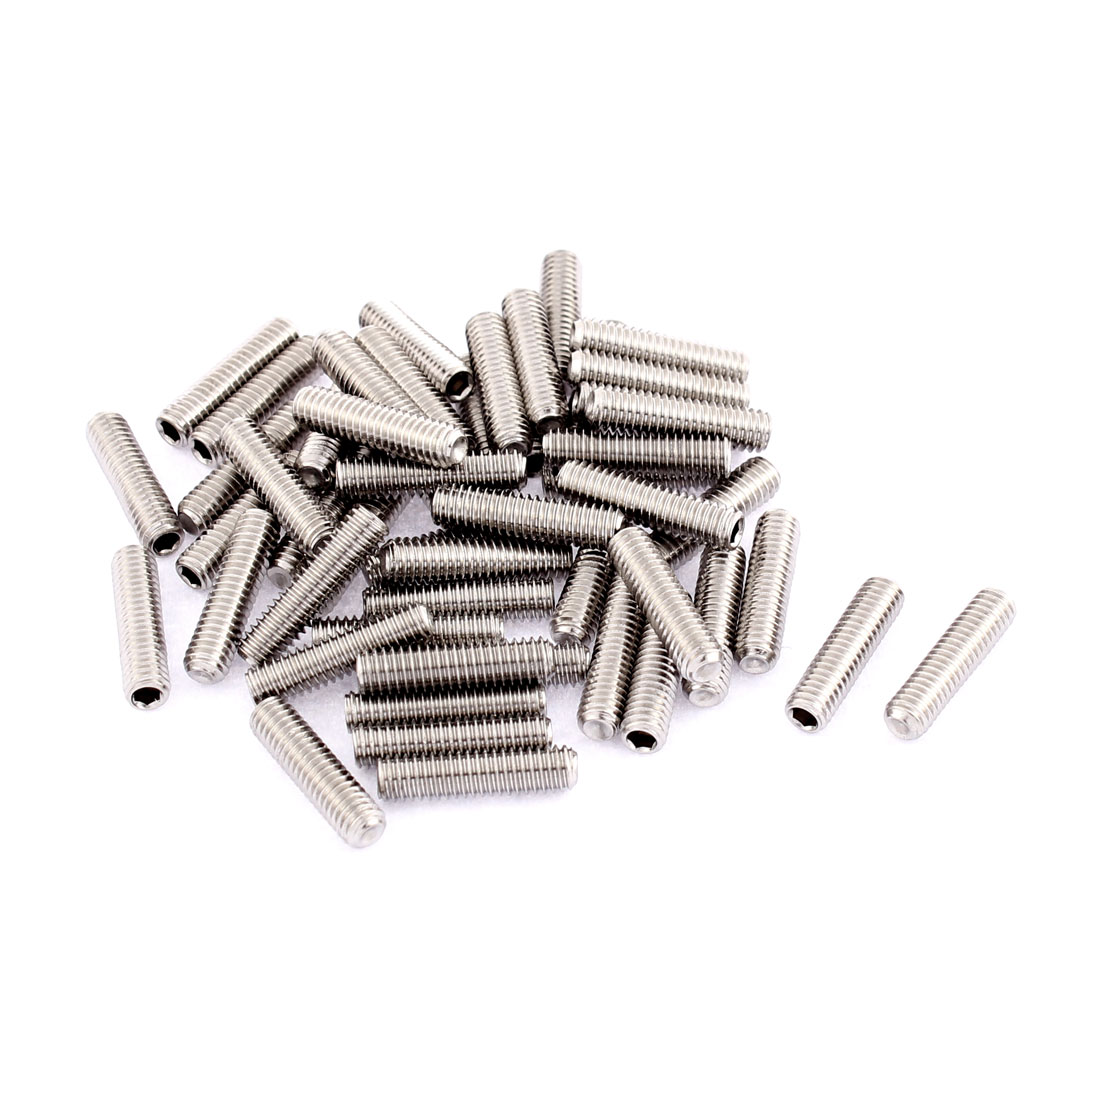 M4x16mm Stainless Steel Hex Socket Set Cap Point Grub Screws Silver Tone 50pcs